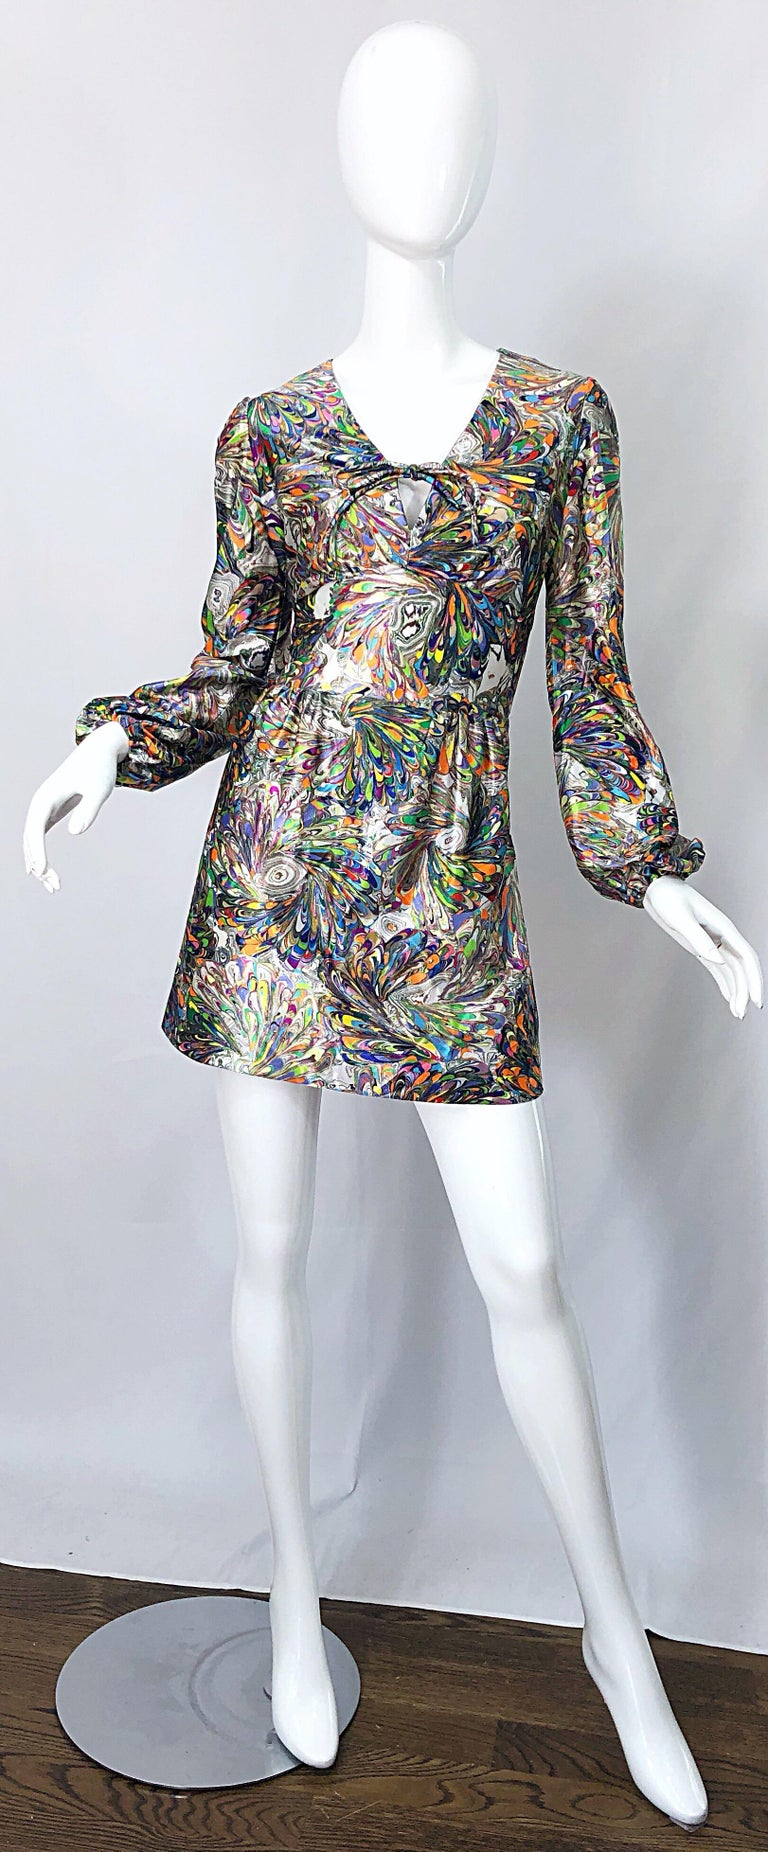 1970s Mosaic Swirl Vibrant Colored Bishop Sleeve Vintage 70s Tunic Dress For Sale 8